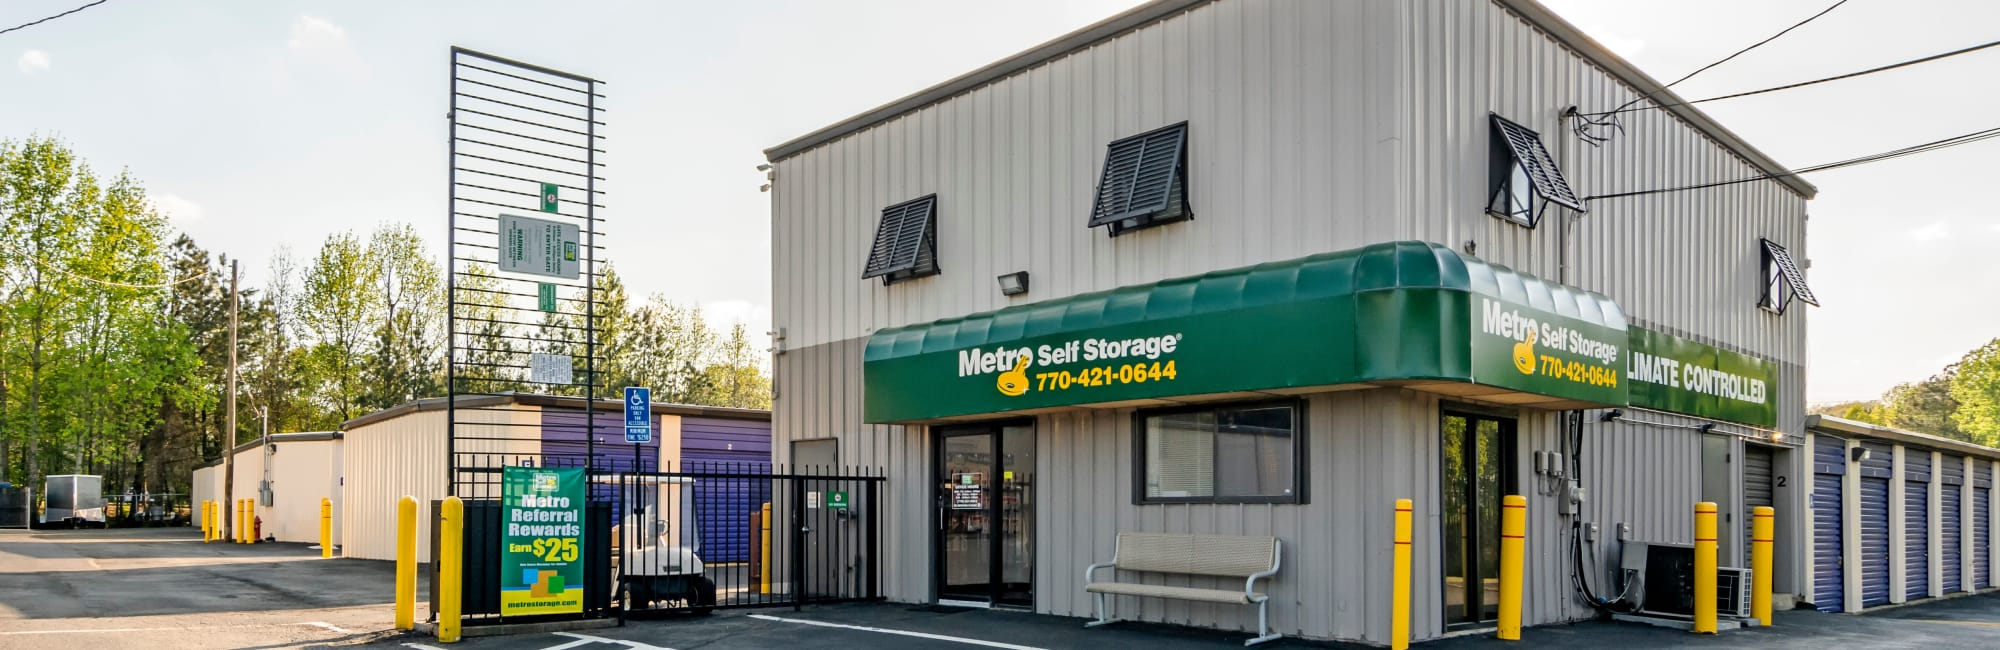 Metro Self Storage in Marietta, GA